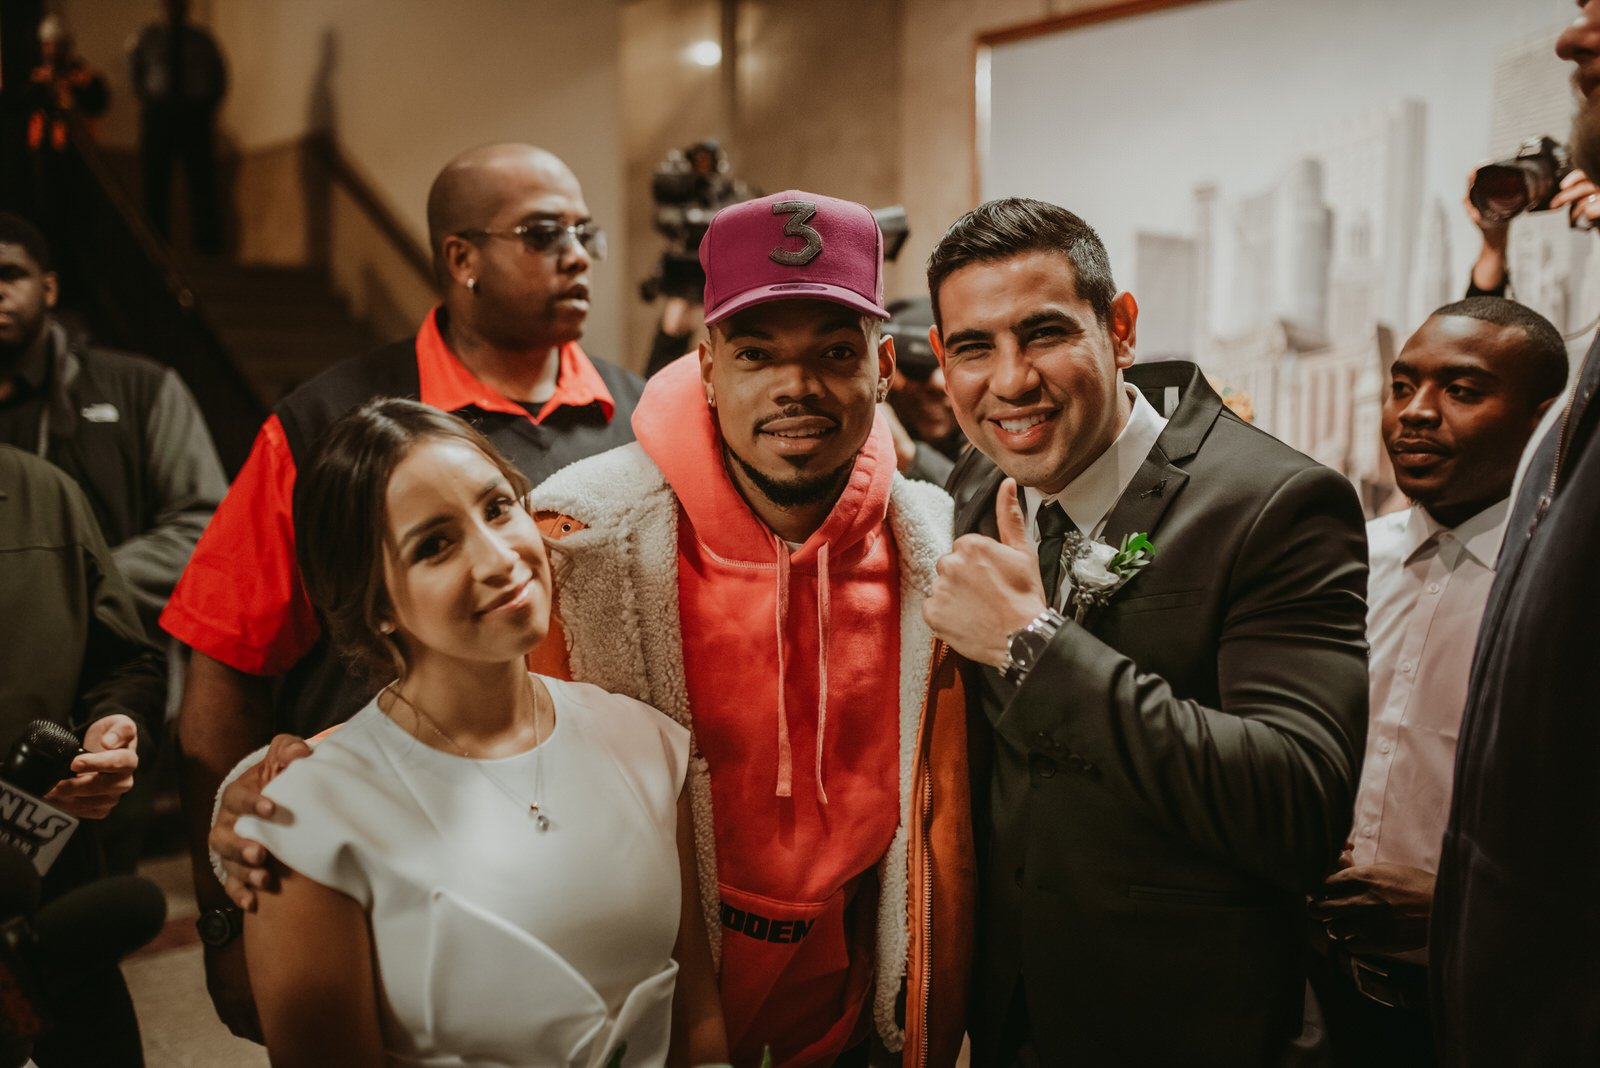 Chance the Rapper photobombed this wedding photography